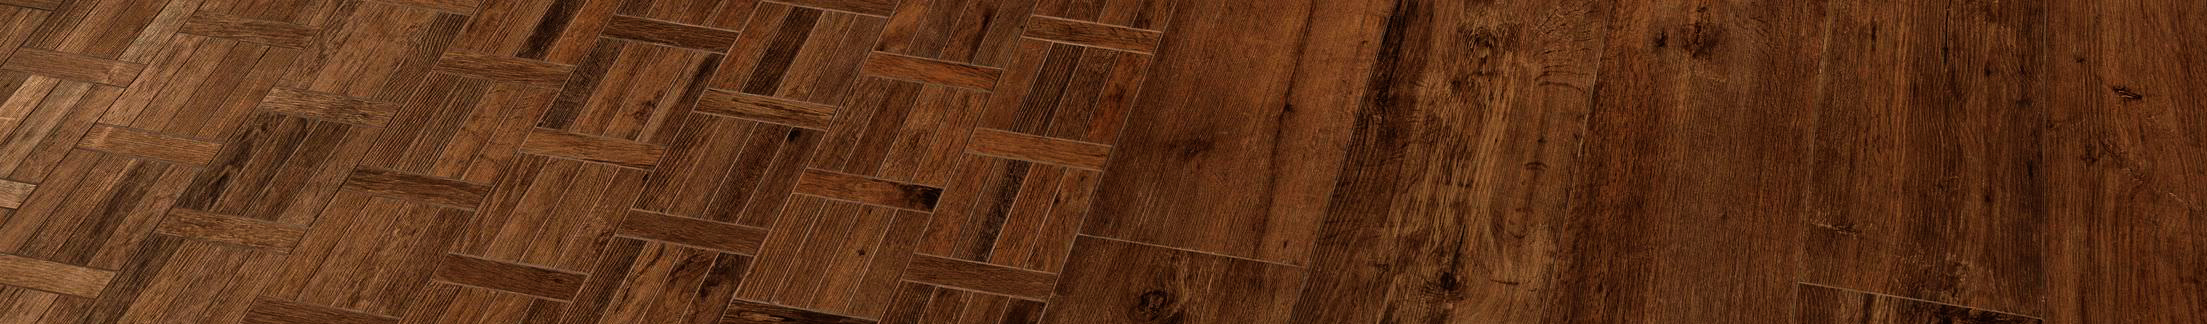 DLV Flooring - Hardwood Floor Installation and Refinishing Experts, Kansas City